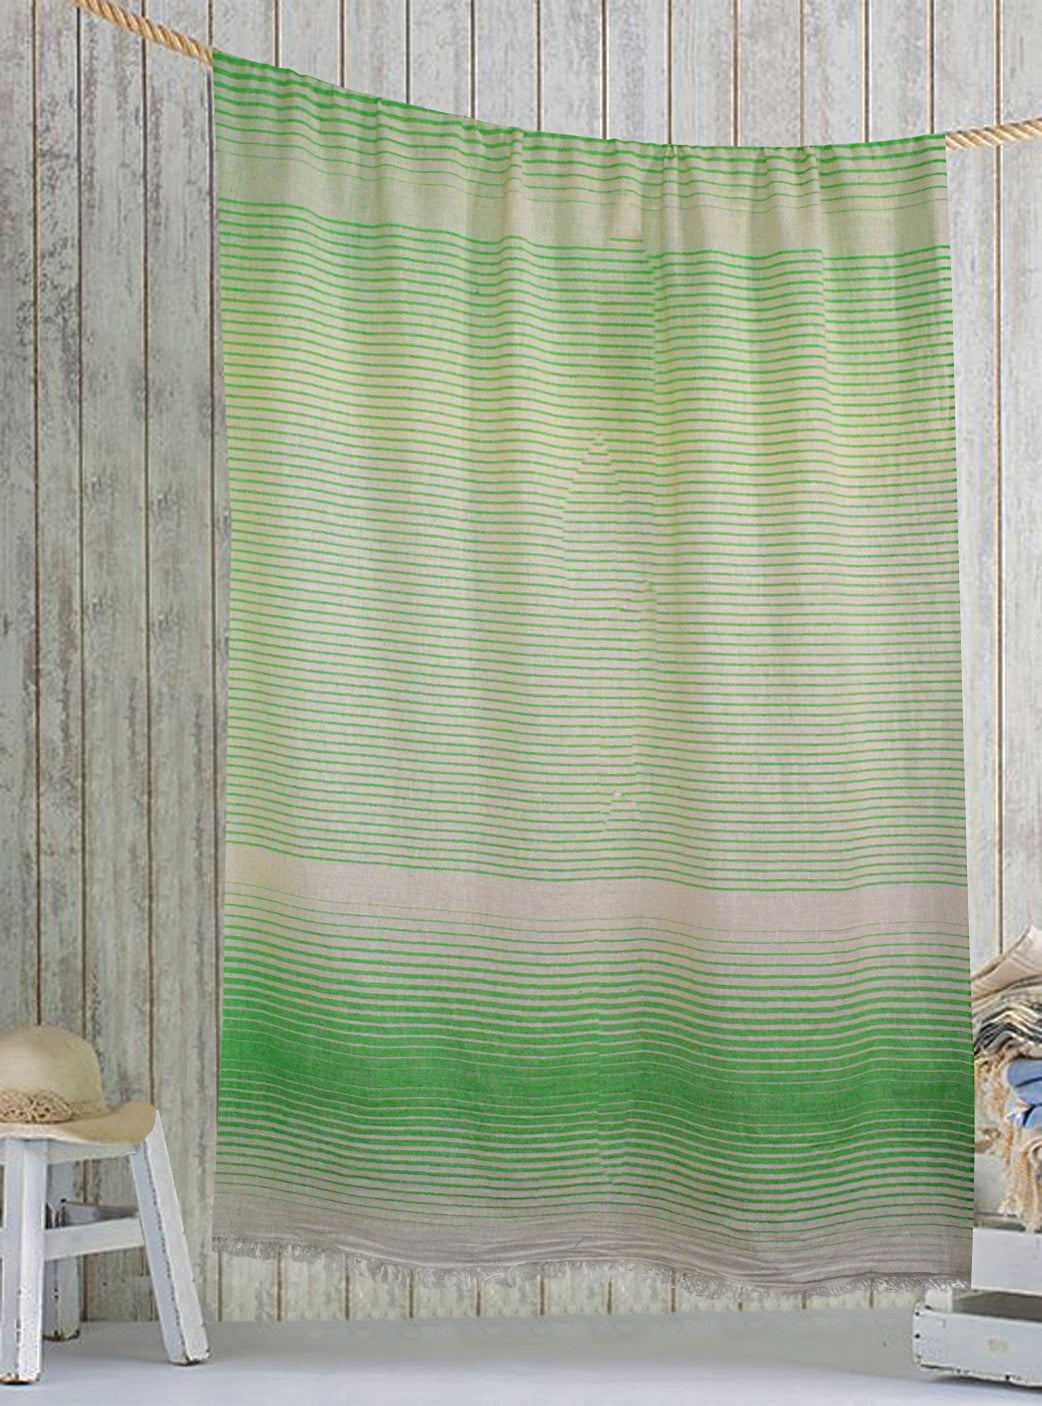 Green/White Turkish fouta towel, Lightweight, pure cotton, highly absorbent, quick-drying feature, multiple white stripes on it and is adorned with fringes on both ends.